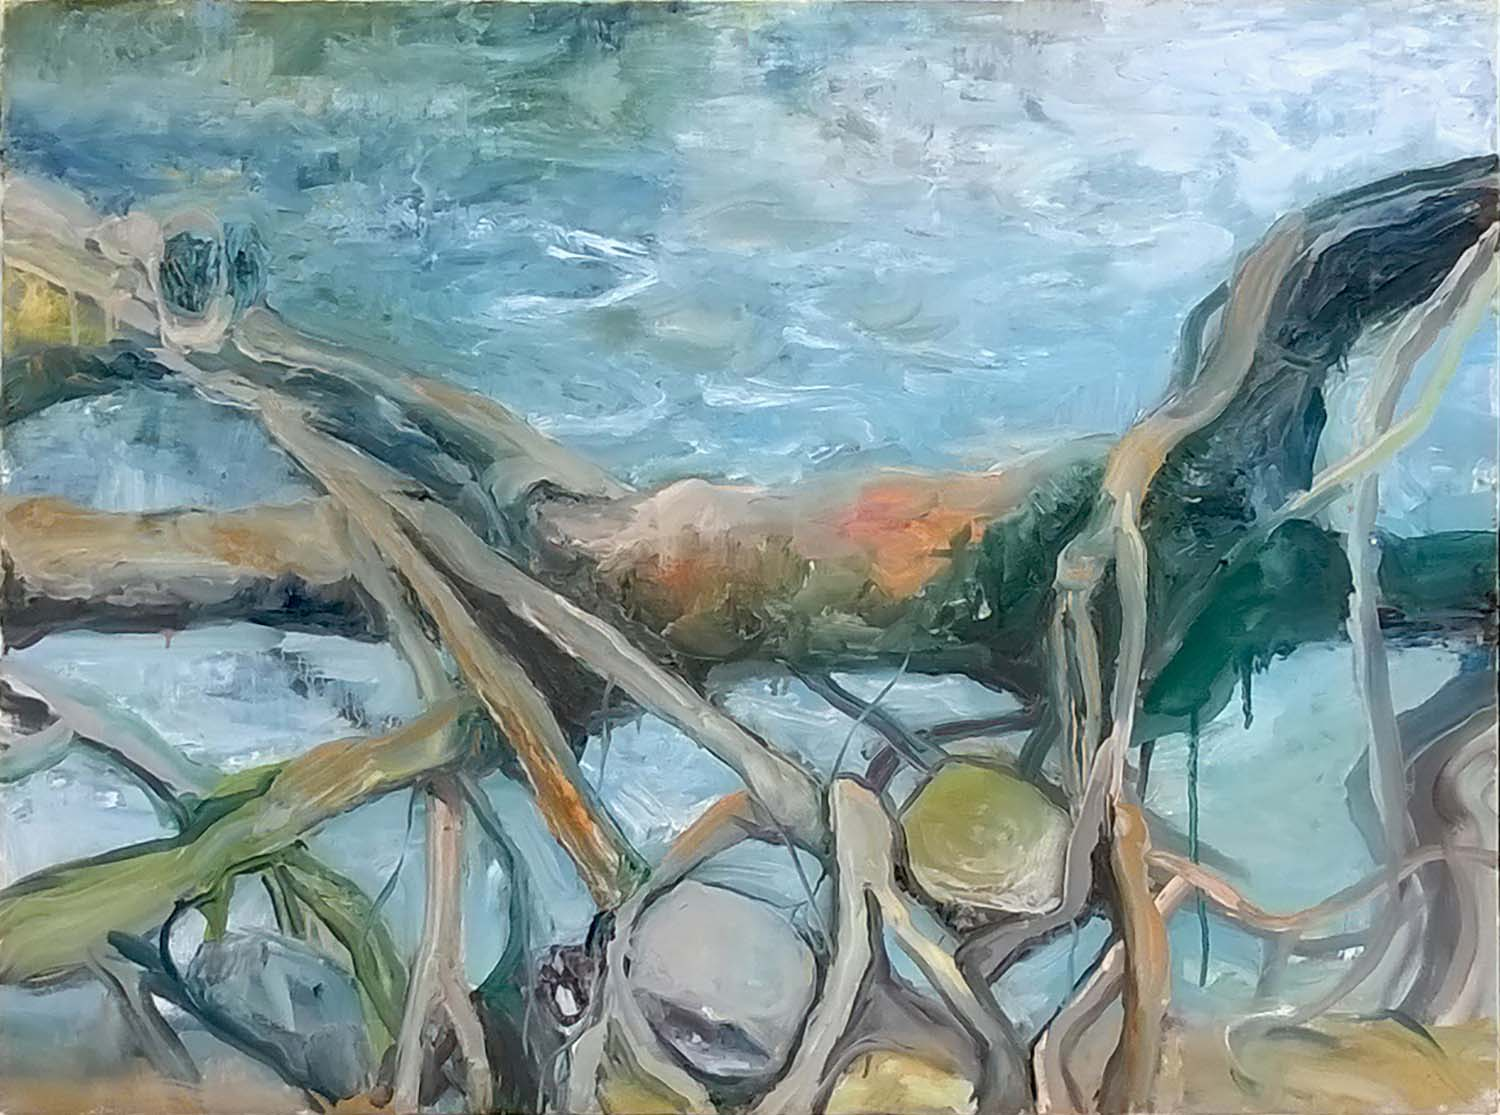 Jana Bednarova, Mawlynnong Rootbridge, Oil on canvas, 75 x 100 cm, 2016